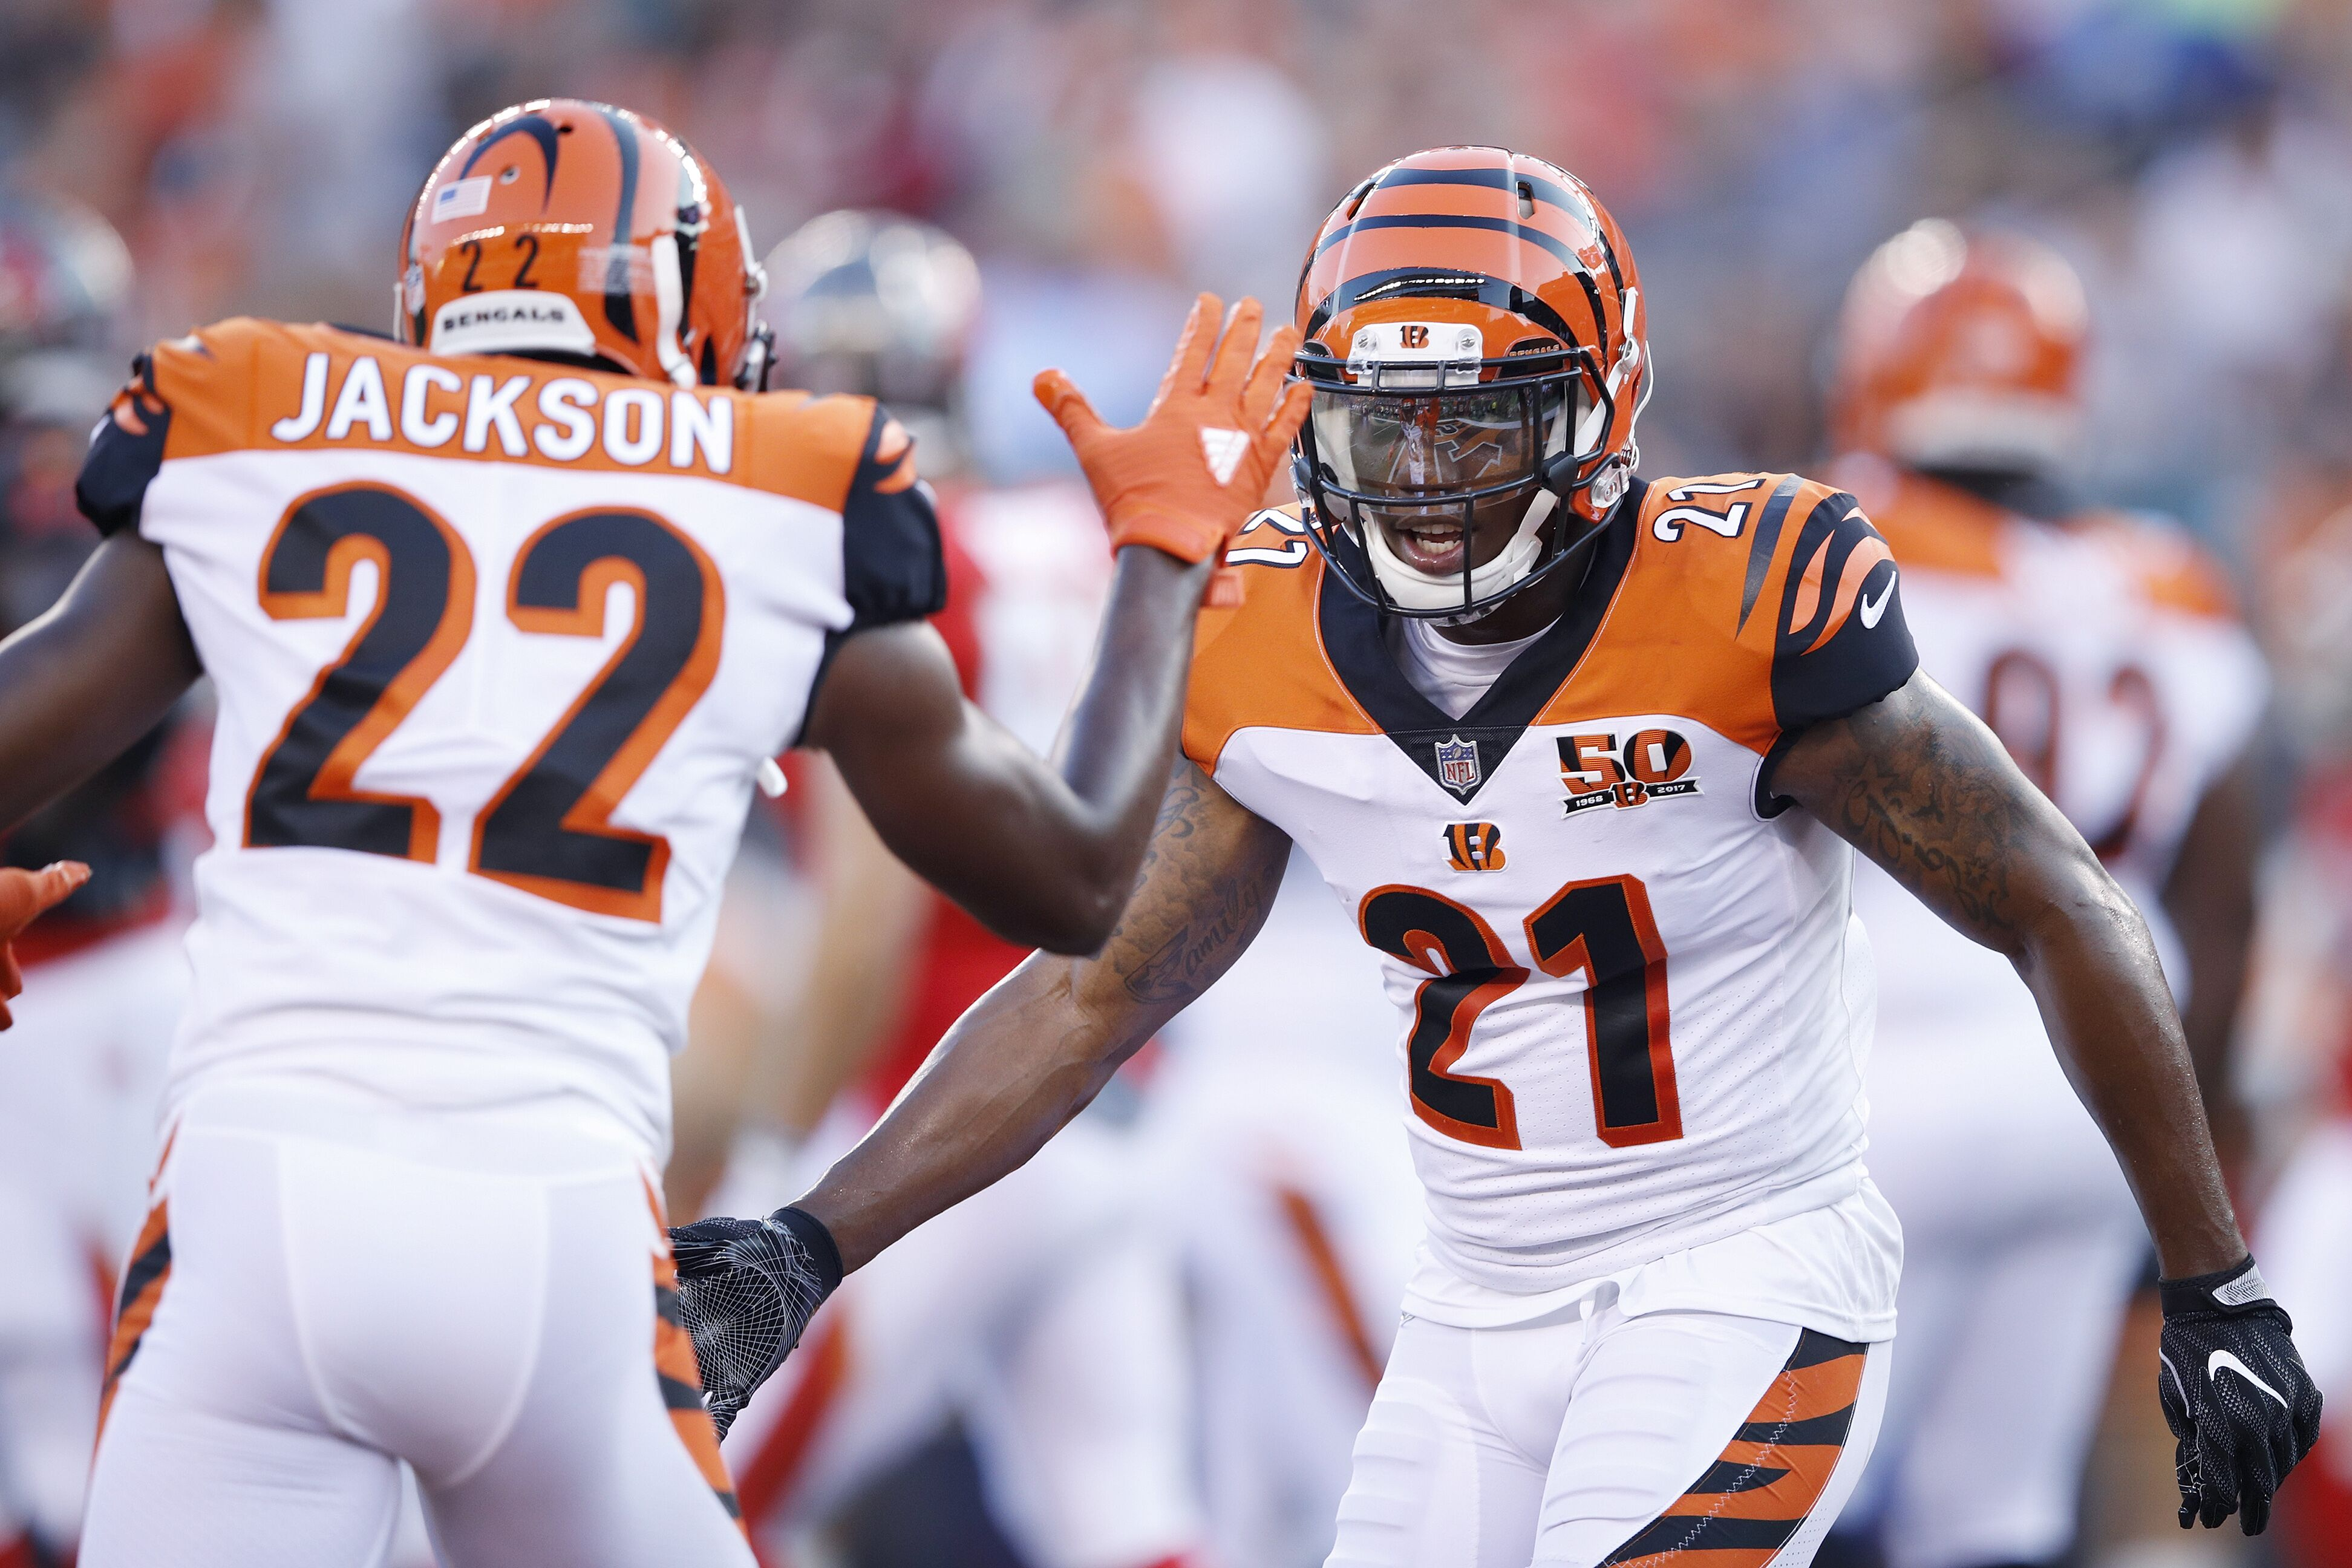 Cincinnati Bengals Secondary Must Continue Youth Movement